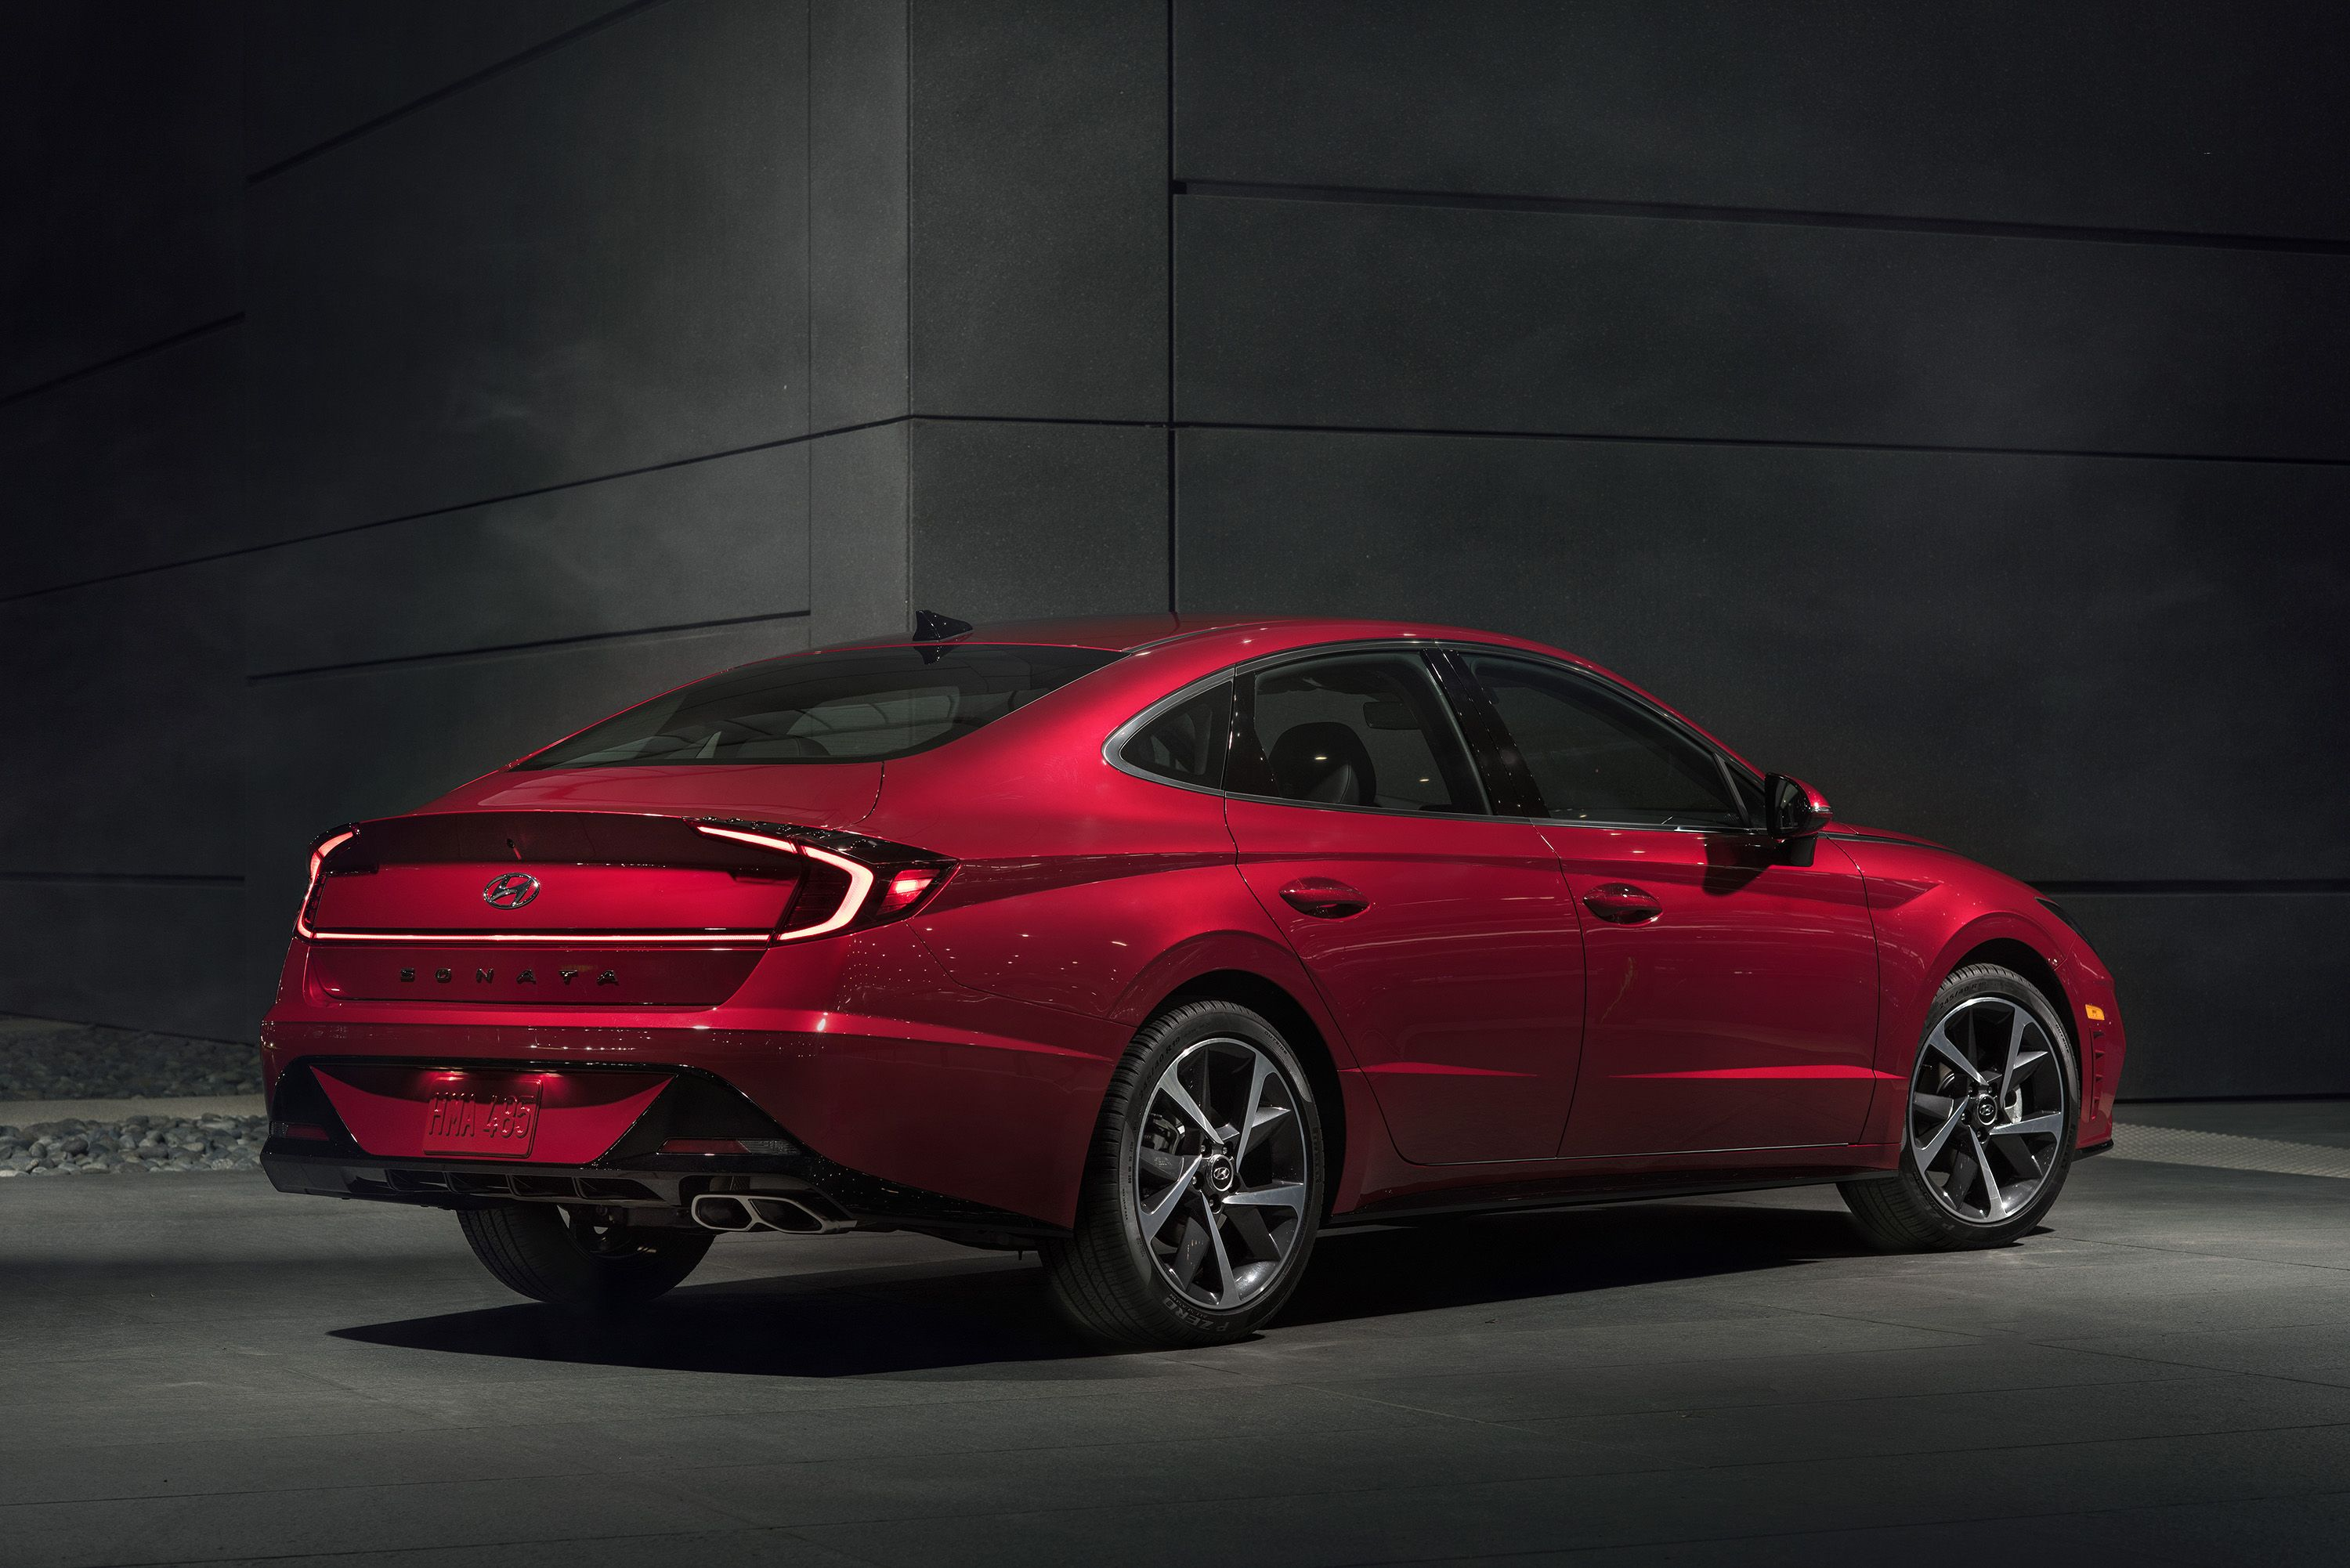 Reviews 2021 Hyundai Sonata Engine Options